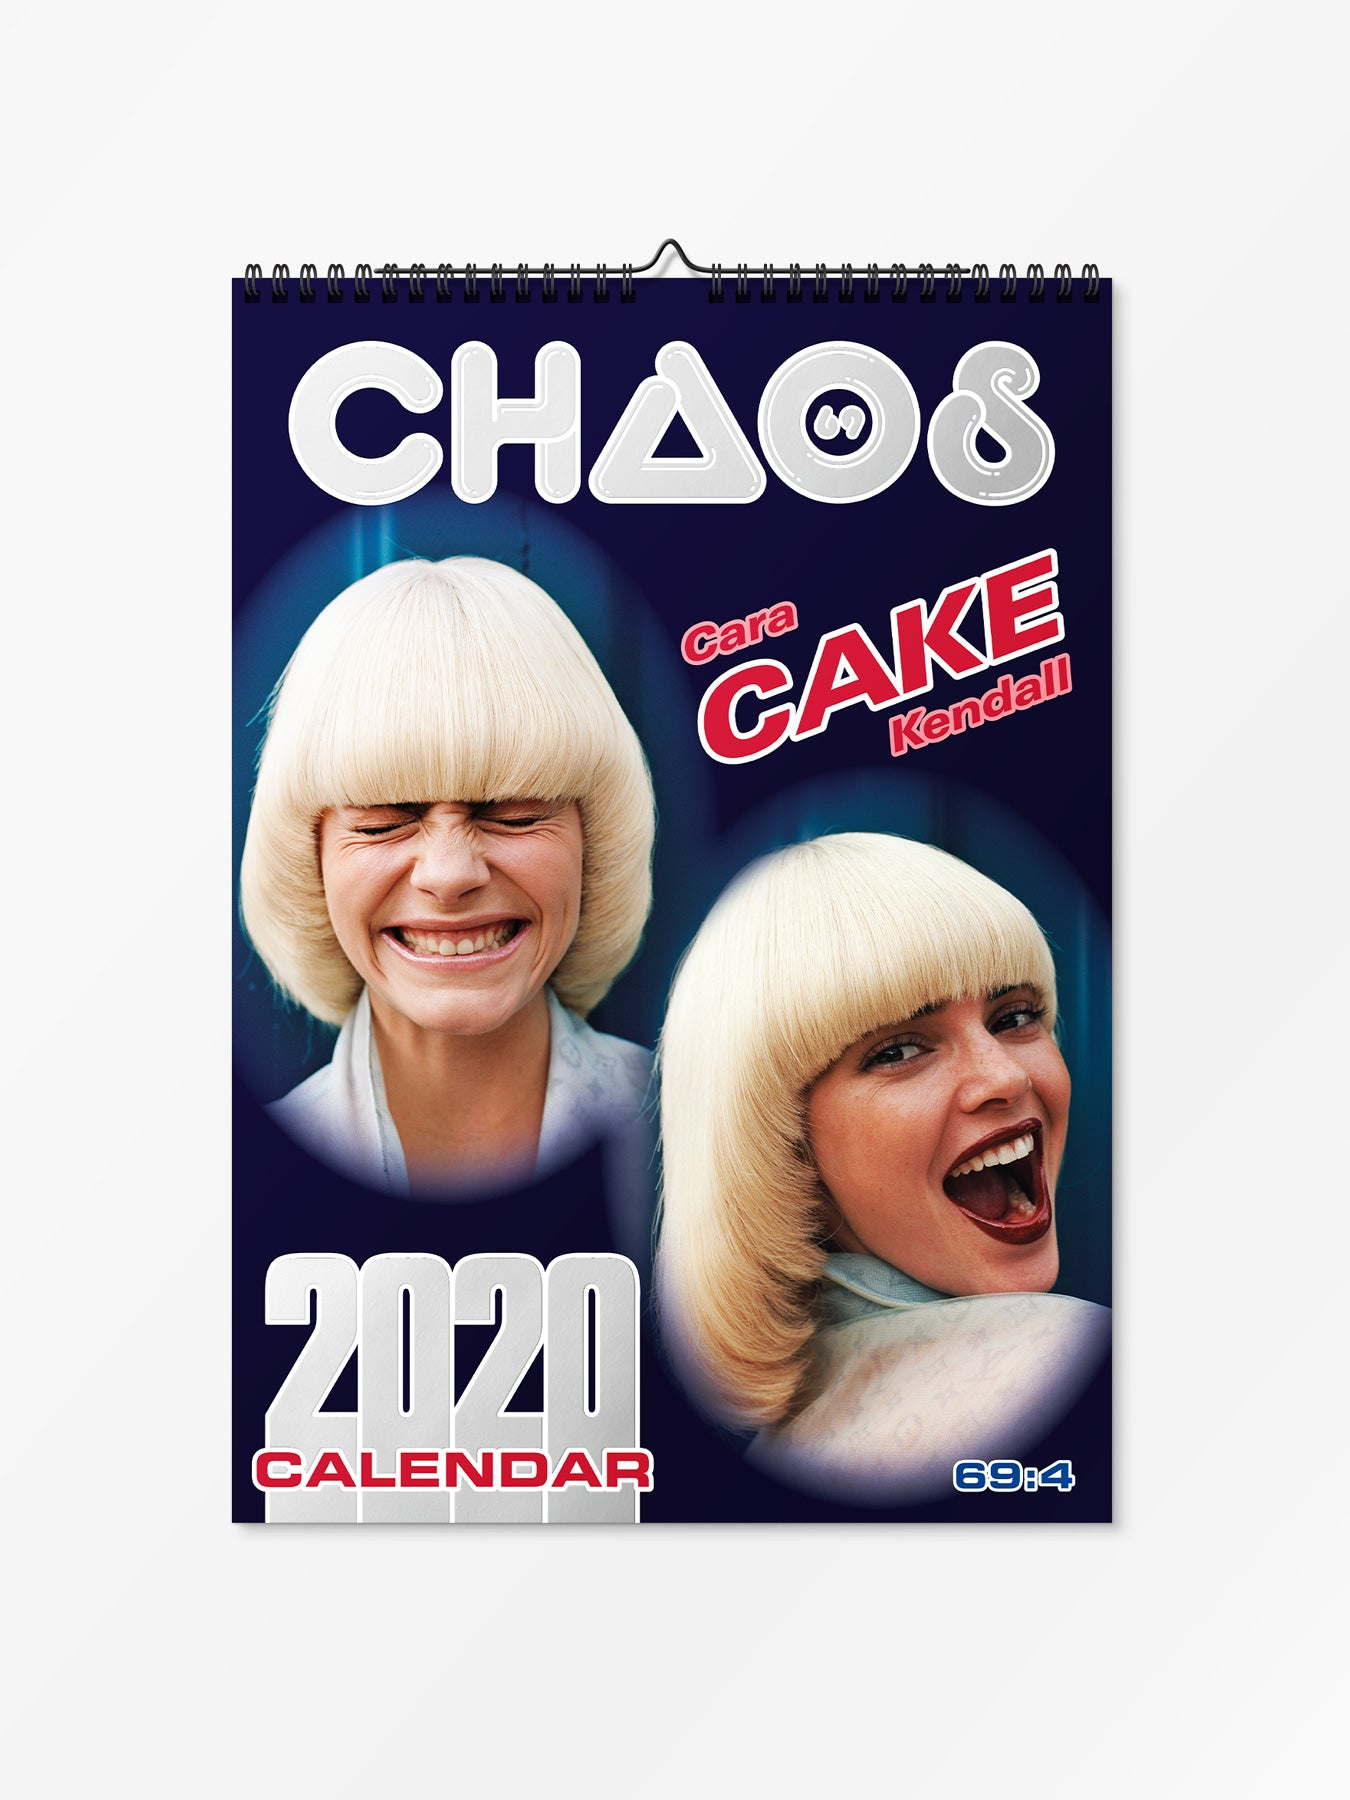 Chaos 69 Calendar Issue 4 - Cover 1